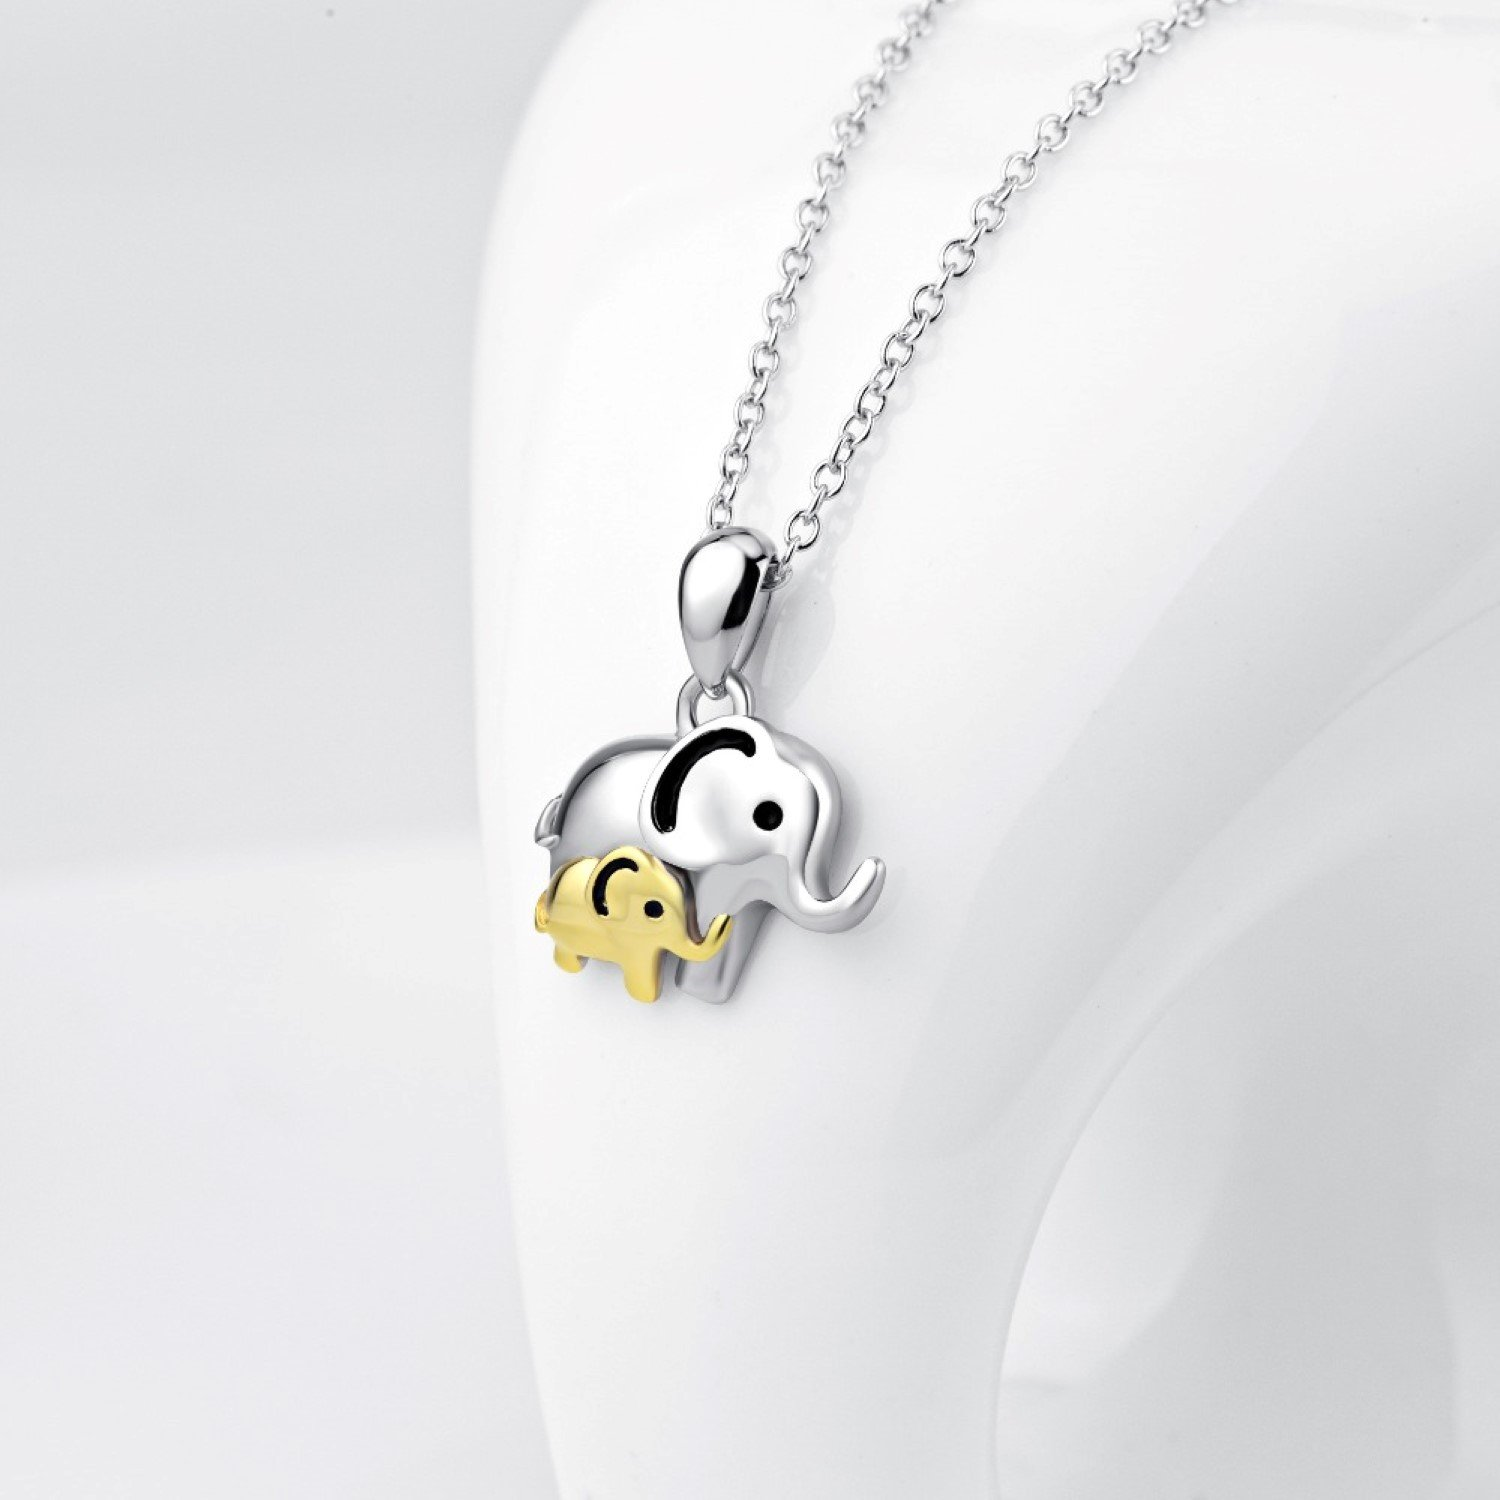 CS-DB Mother Love Mom and Child Lucky Elephant Top Stylish Silver Necklaces Pendants